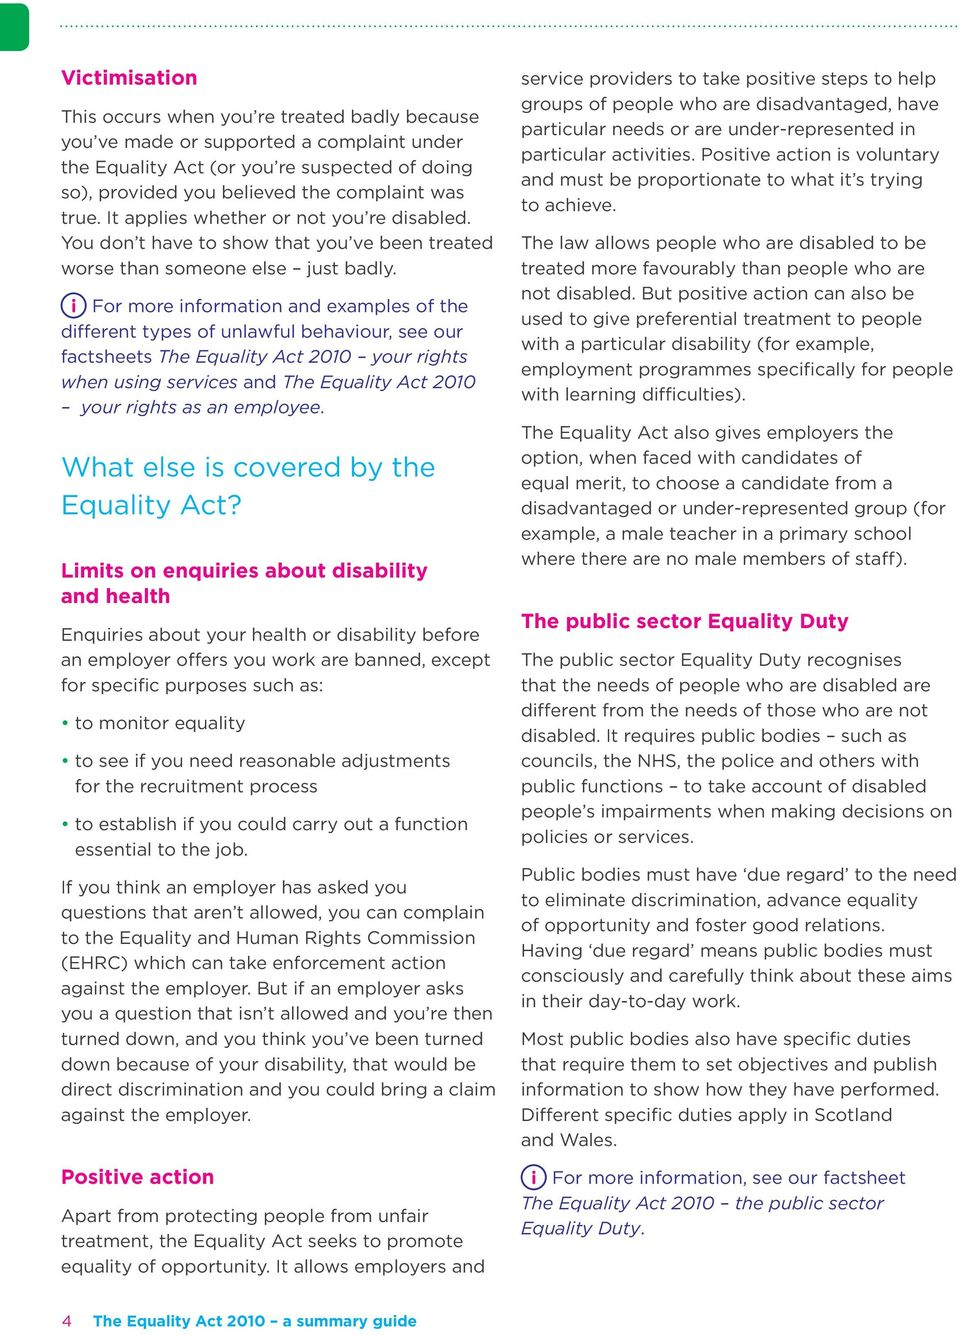 For more information and examples of the different types of unlawful behaviour, see our factsheets The Equality Act 2010 your rights when using services and The Equality Act 2010 your rights as an